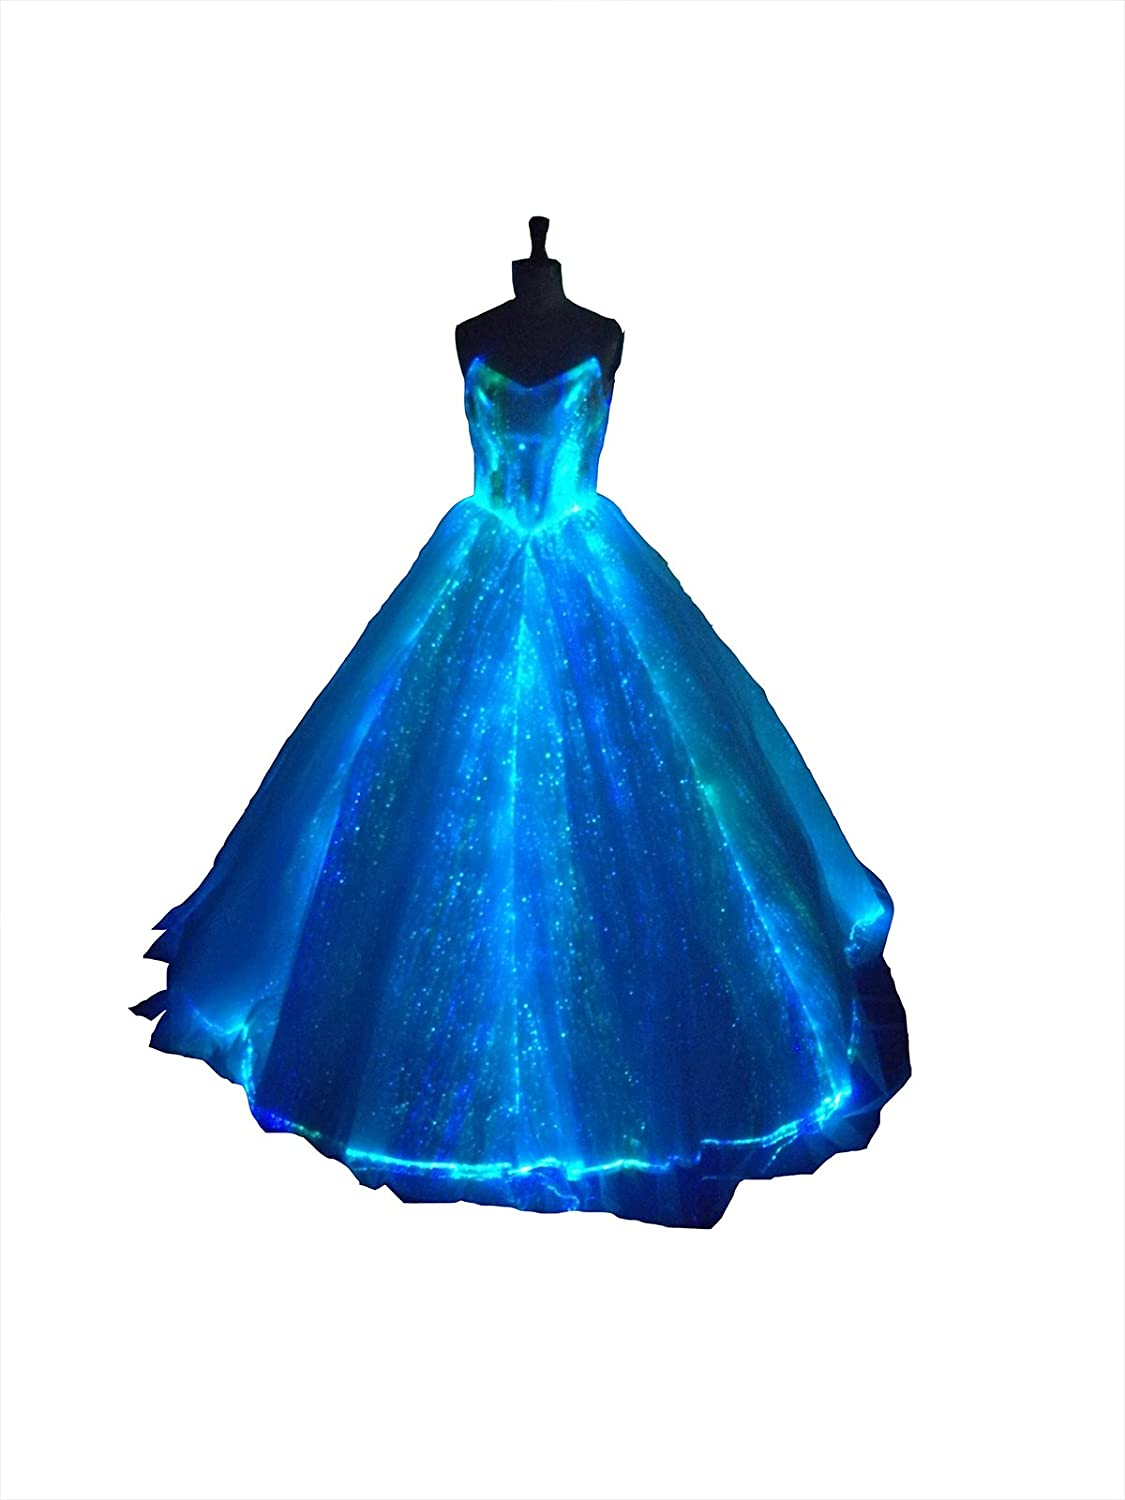 a8b7c47cf55 Luxury LED Wedding Dress Light Up Bridal Gown Fiber Optic Formal Dresses  Luminous Banquet Dresses White at Amazon Women s Clothing store